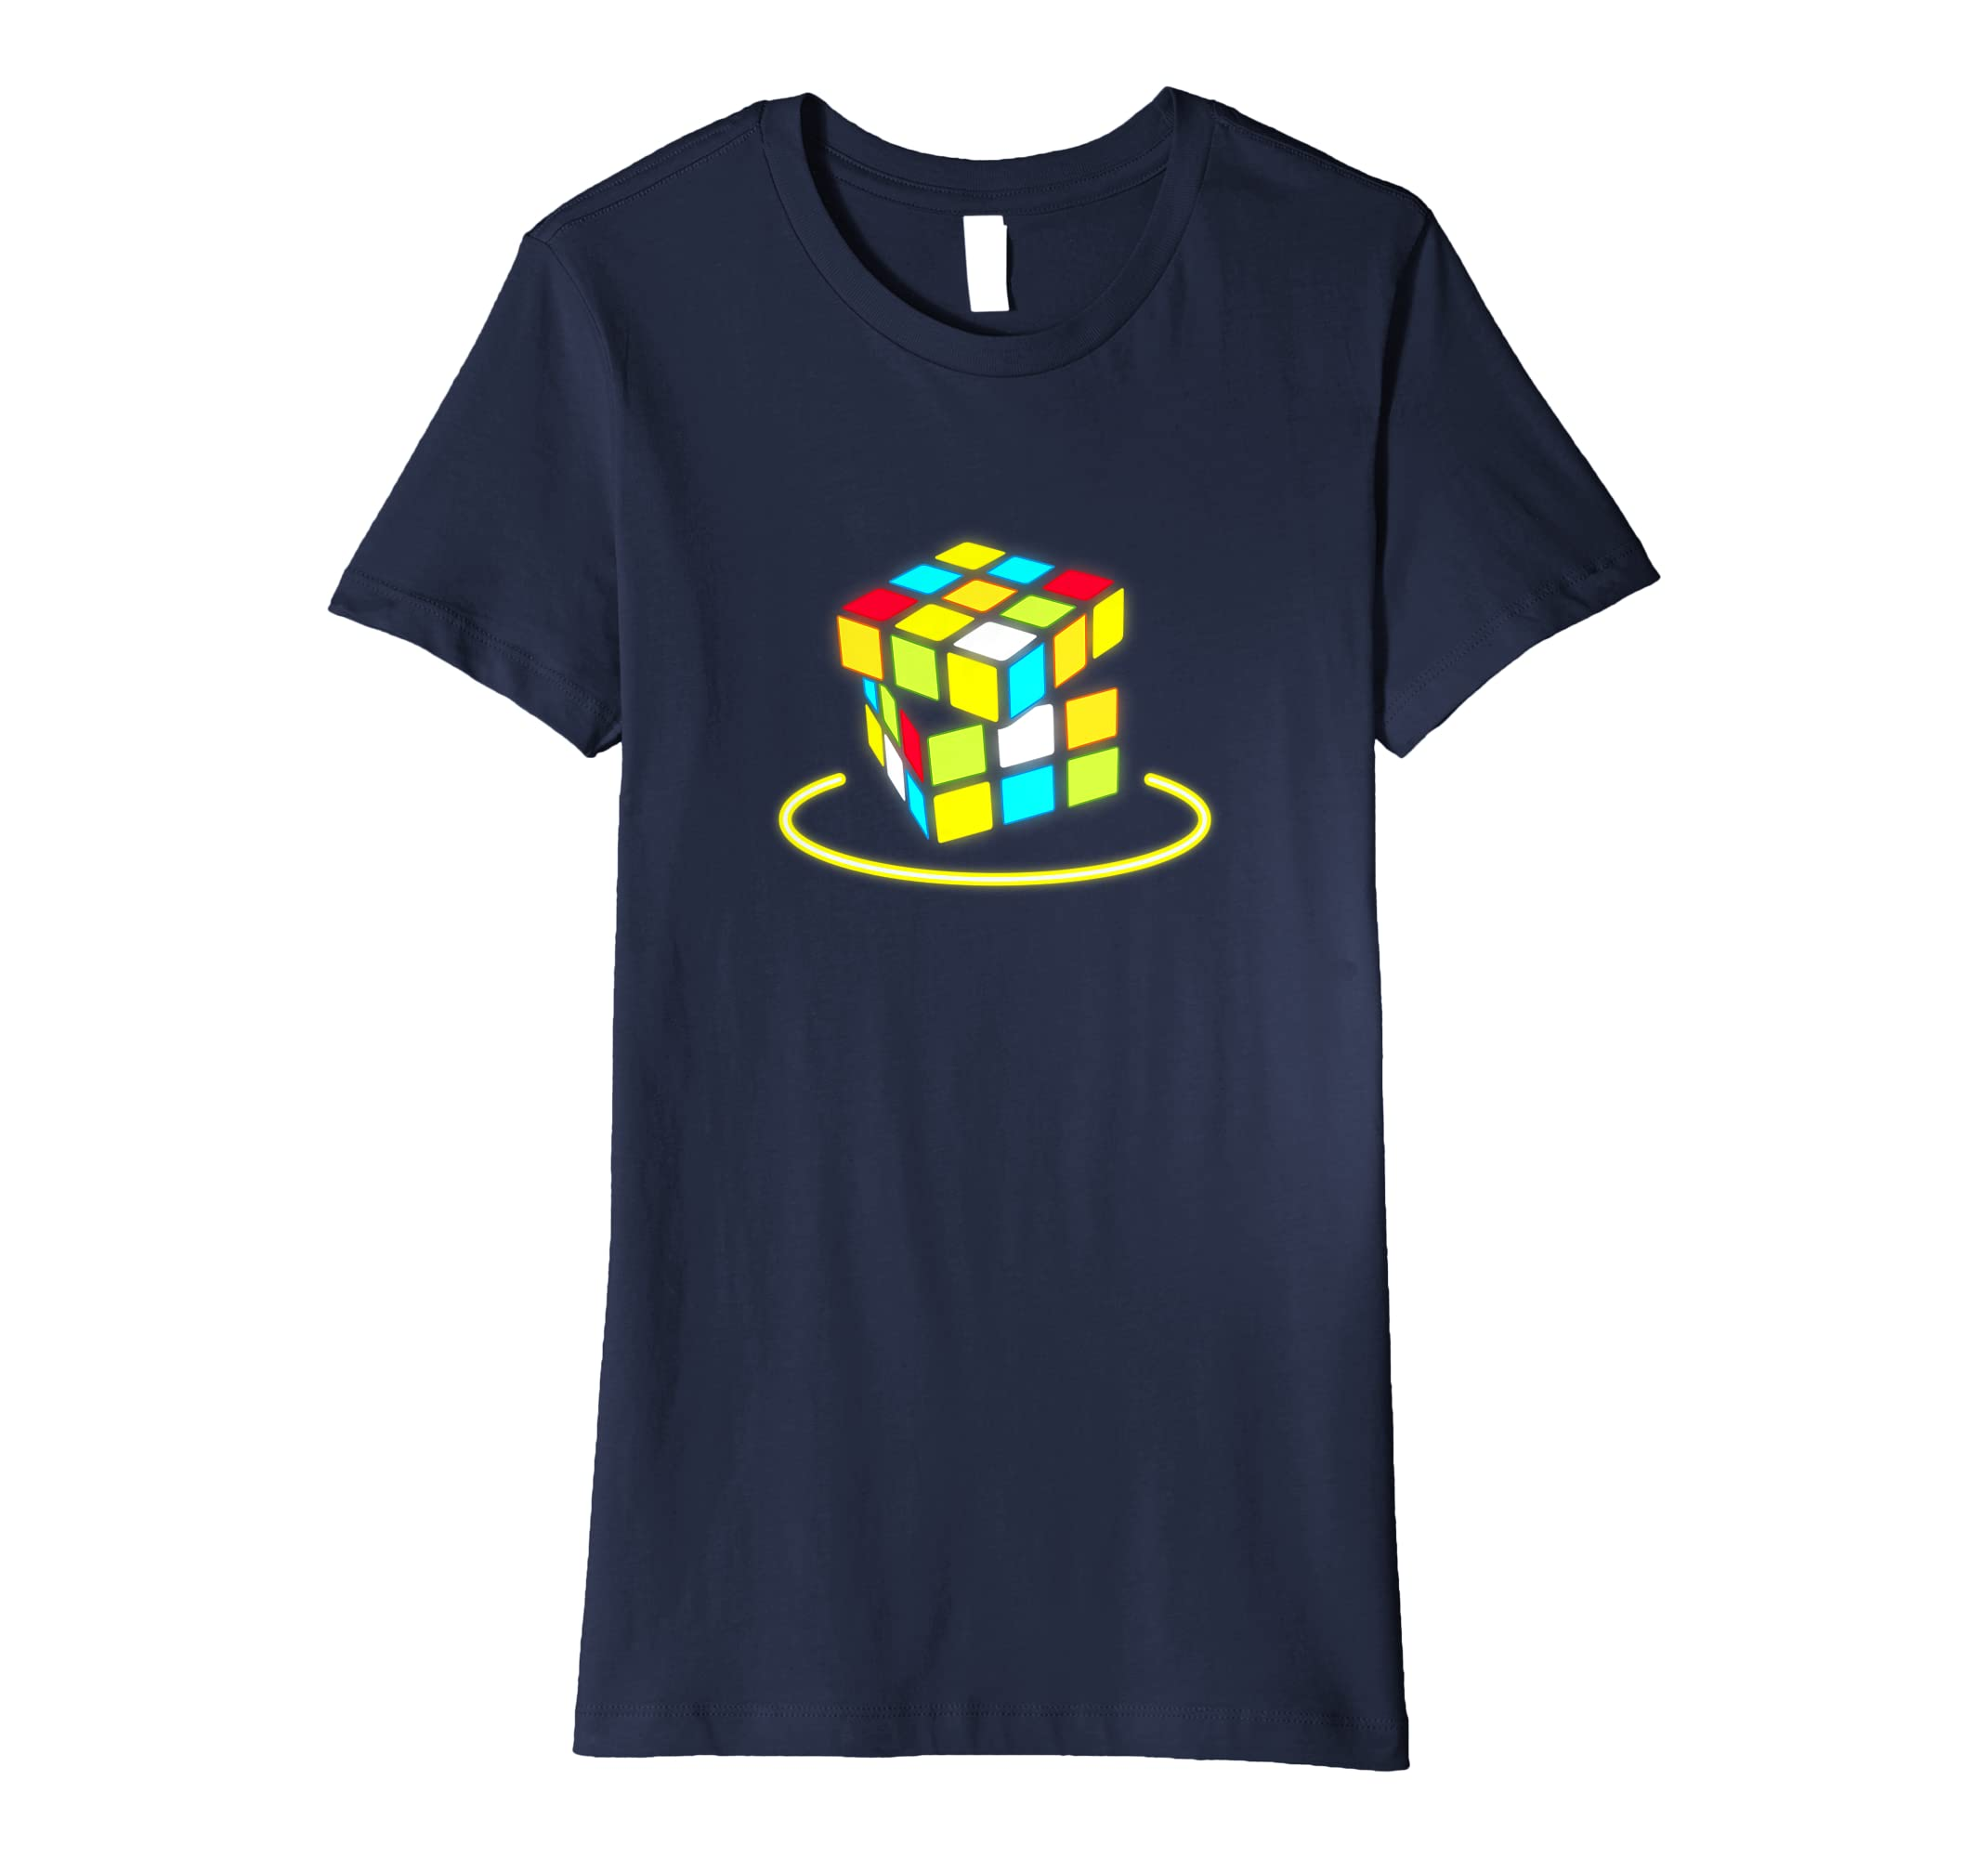 Amazon Com Retro Cube 80s Neon T Shirt 80s Clothes For Women Men